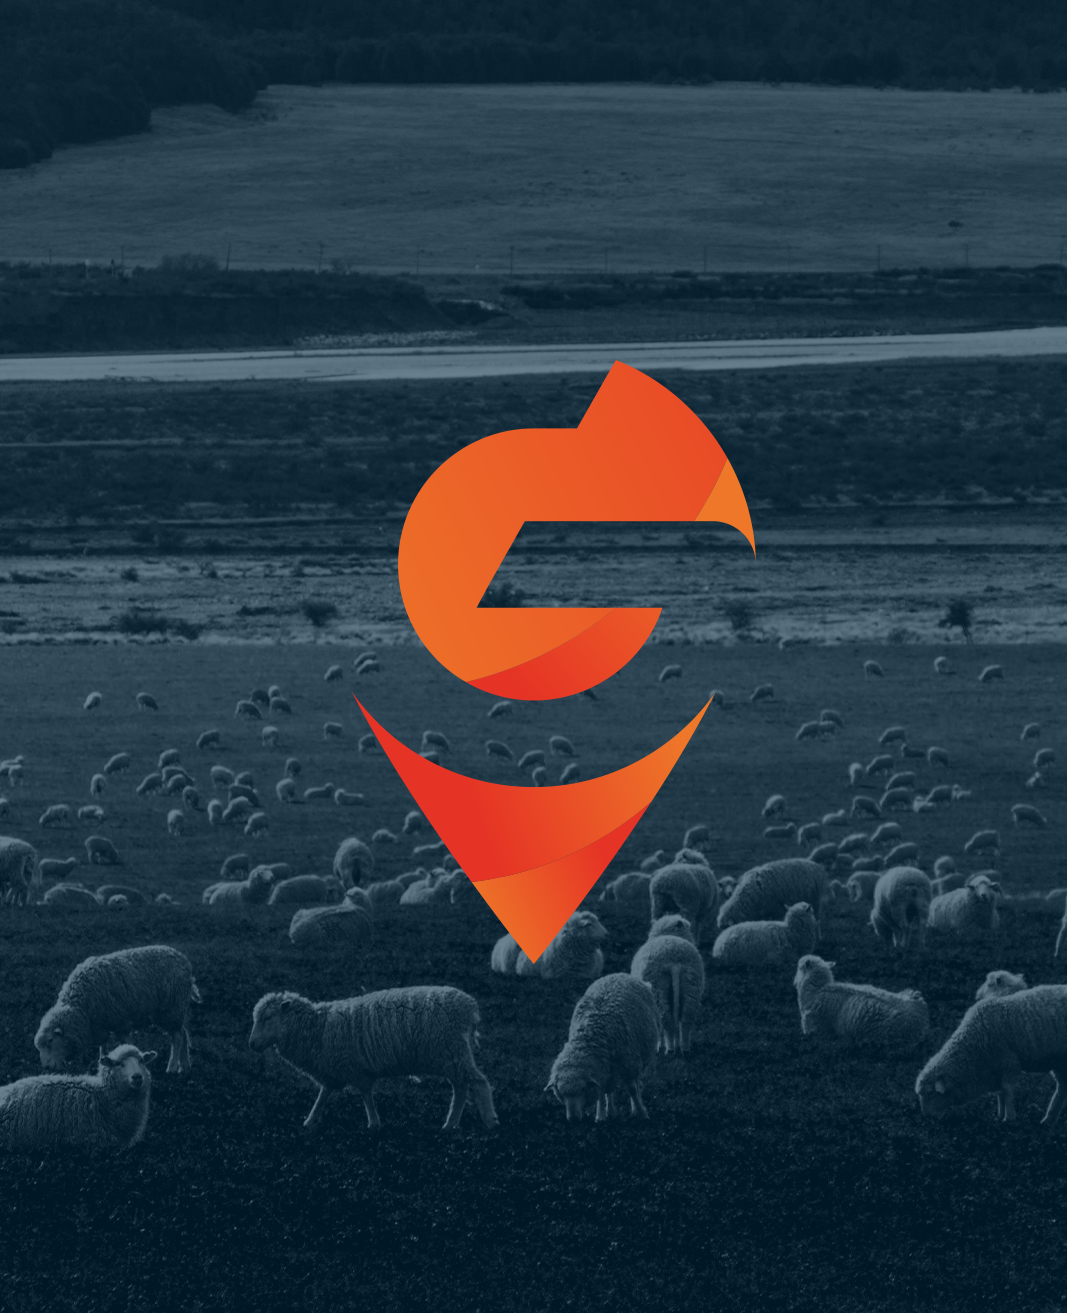 Blue monochrome image of farmland and sheep with a logo in the shape of a location pin you'll find on a map with a G in the negative space.